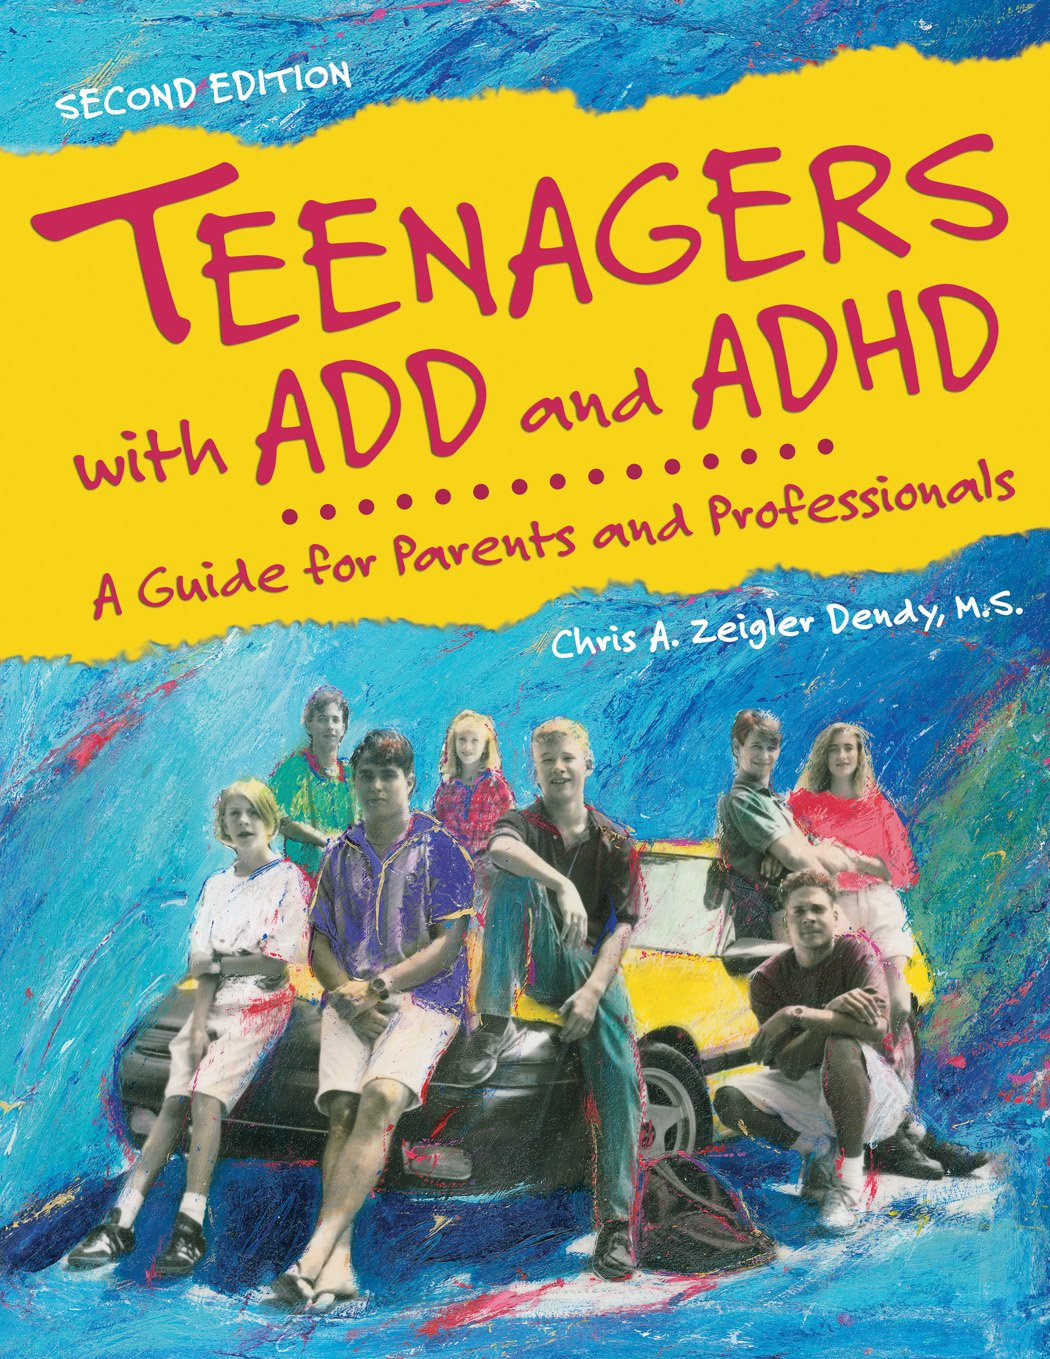 Teenagers ADD ADHD Parents Professionals product image